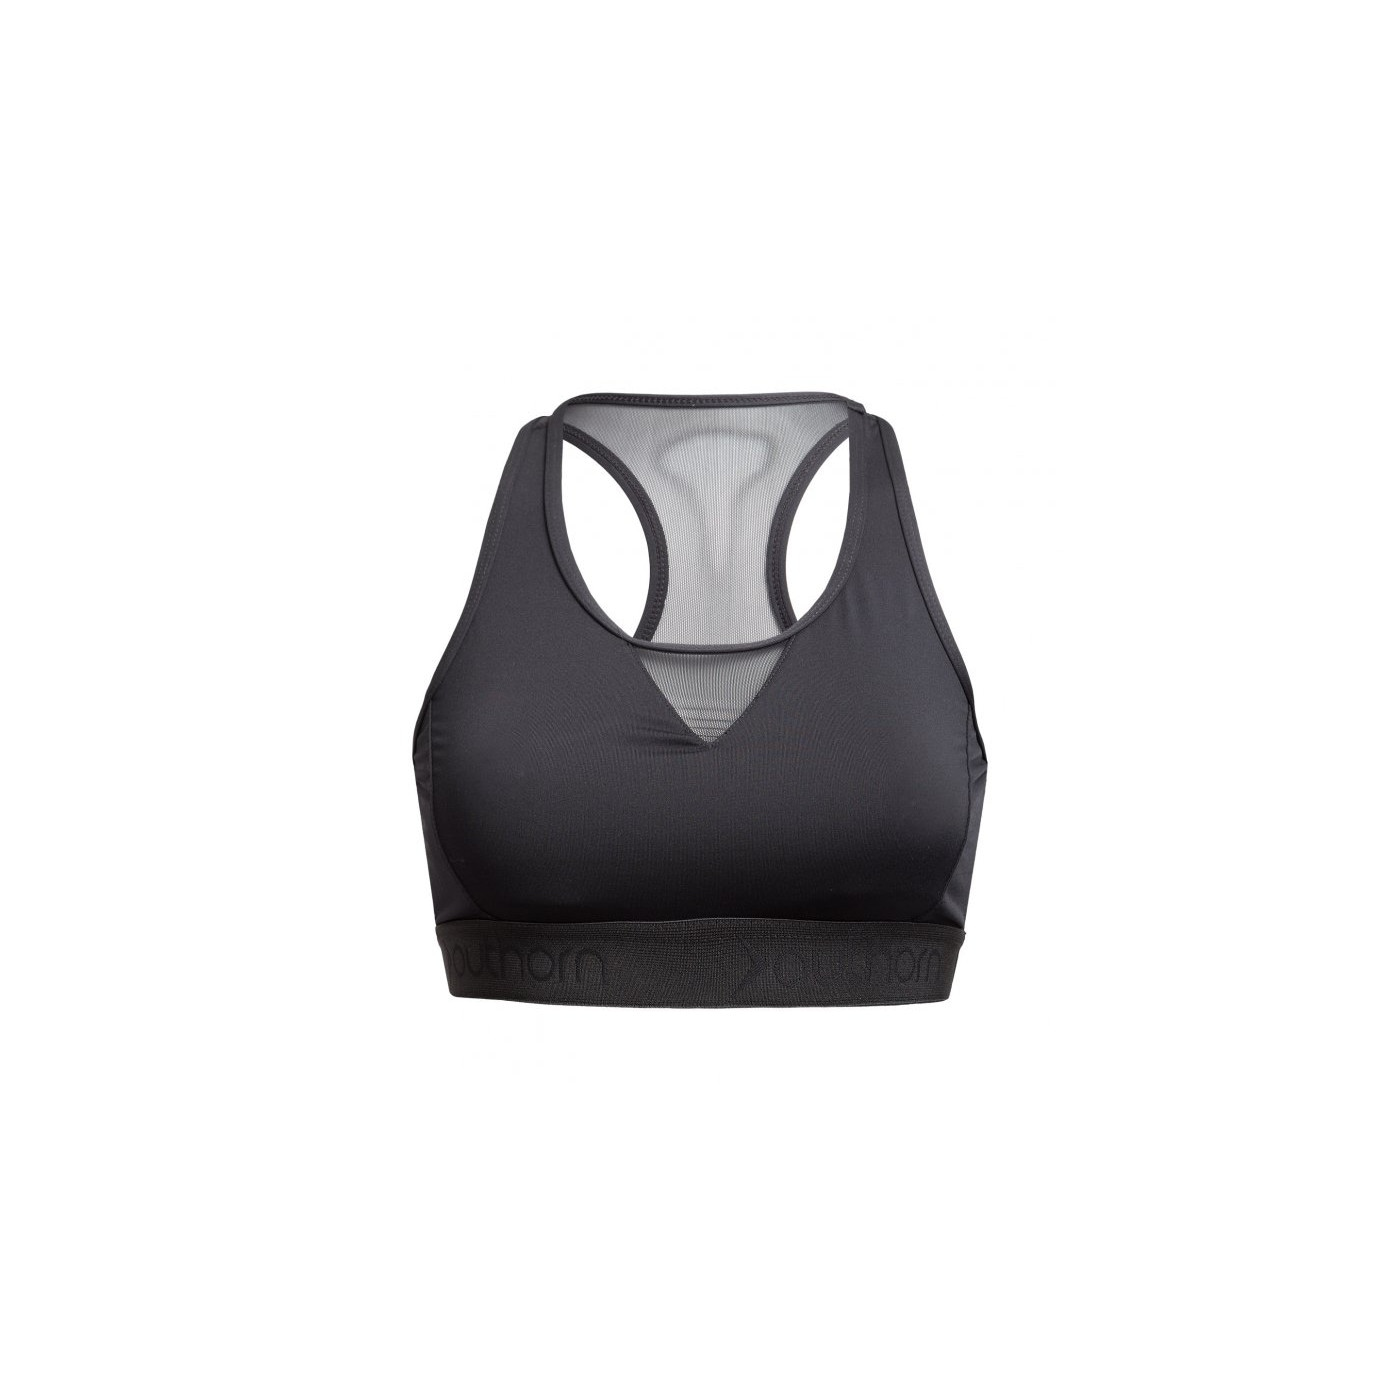 Women's sports bra OUTHORN HOL19-STAD603